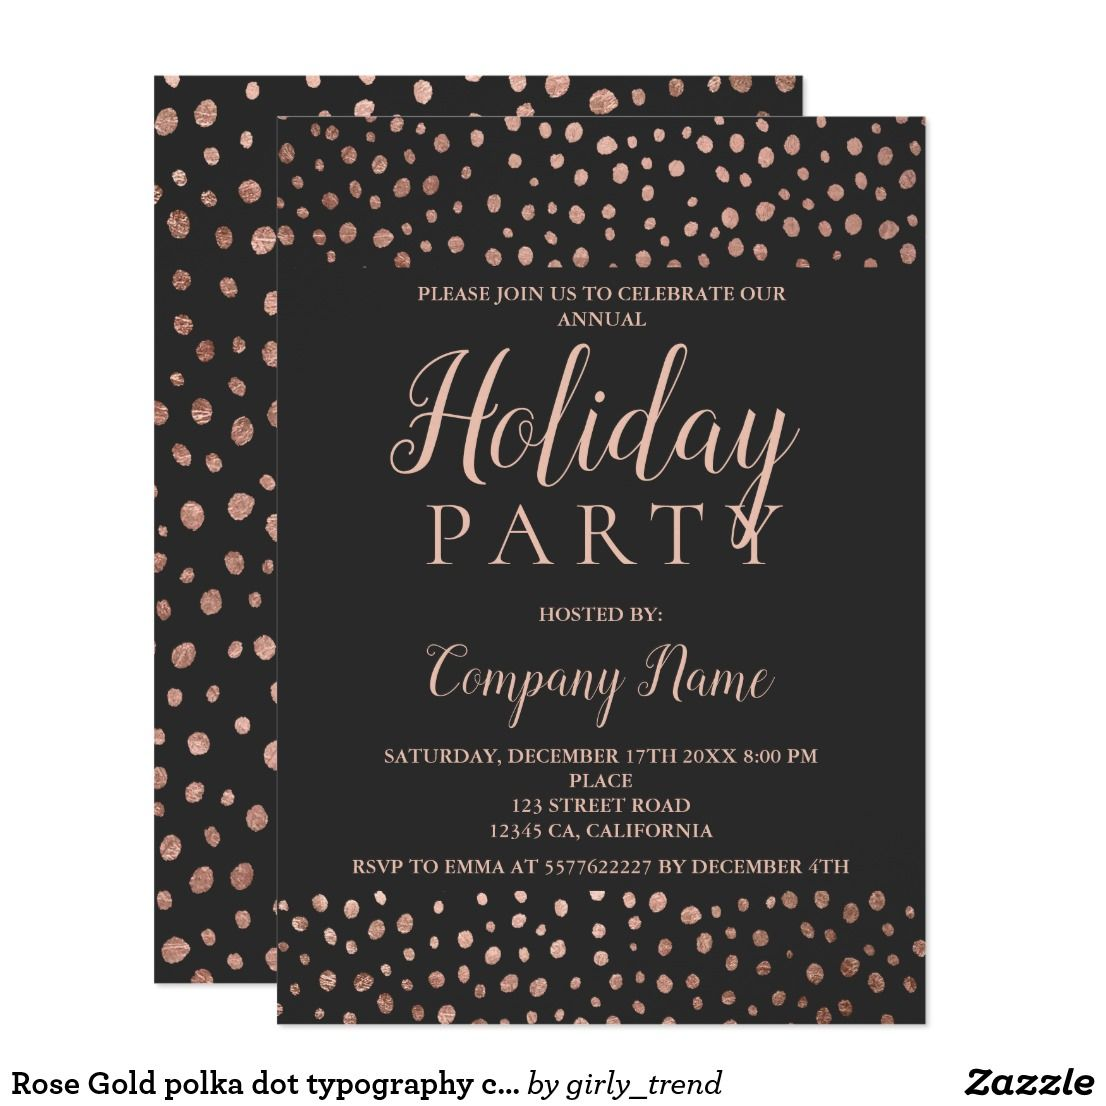 Rose Gold Polka Dot Typography Corporate Christmas Card Party